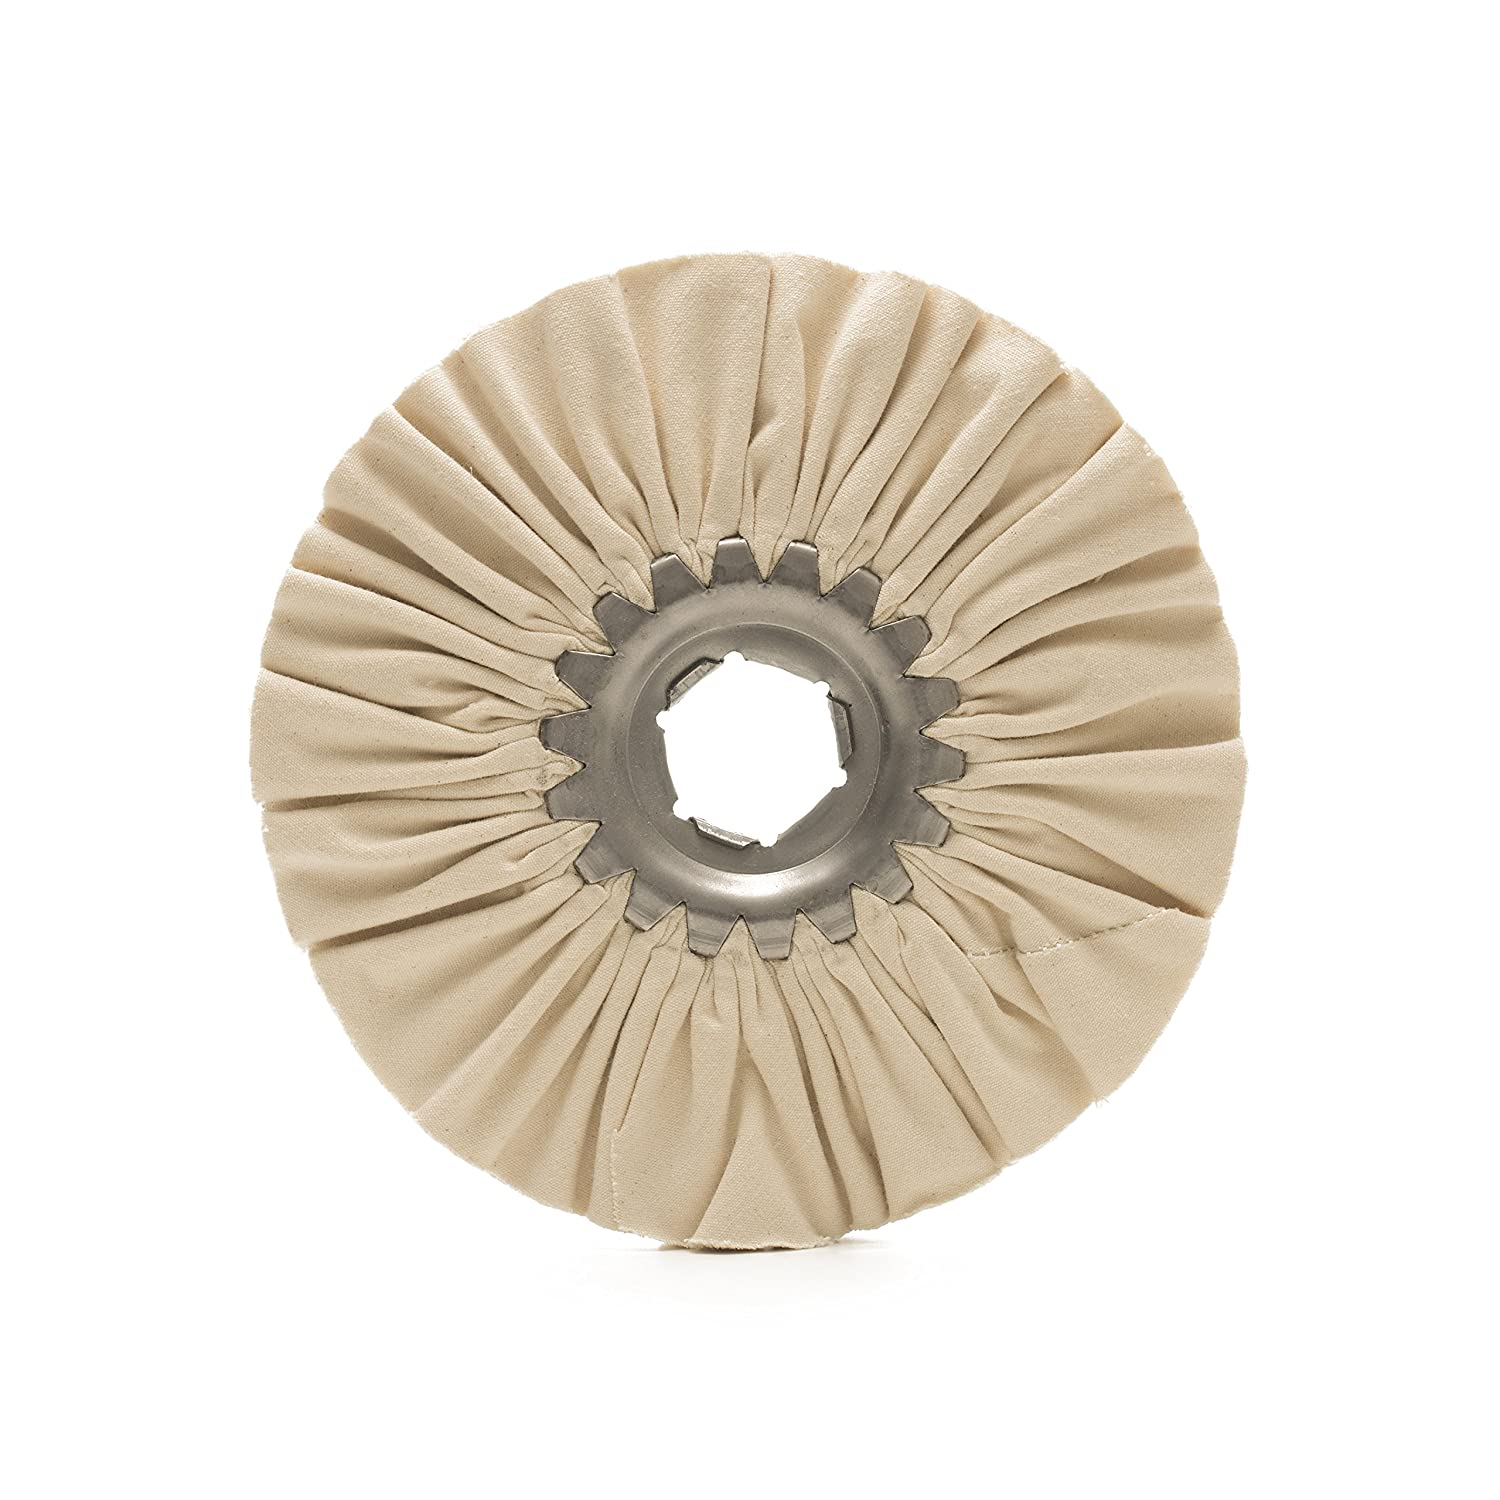 MaxiDetail DP2060 Airway Buffing Wheel FINE, Cotton Buffing Pad for Metal, Aluminium, Stainless Steel/Diameter 150mm